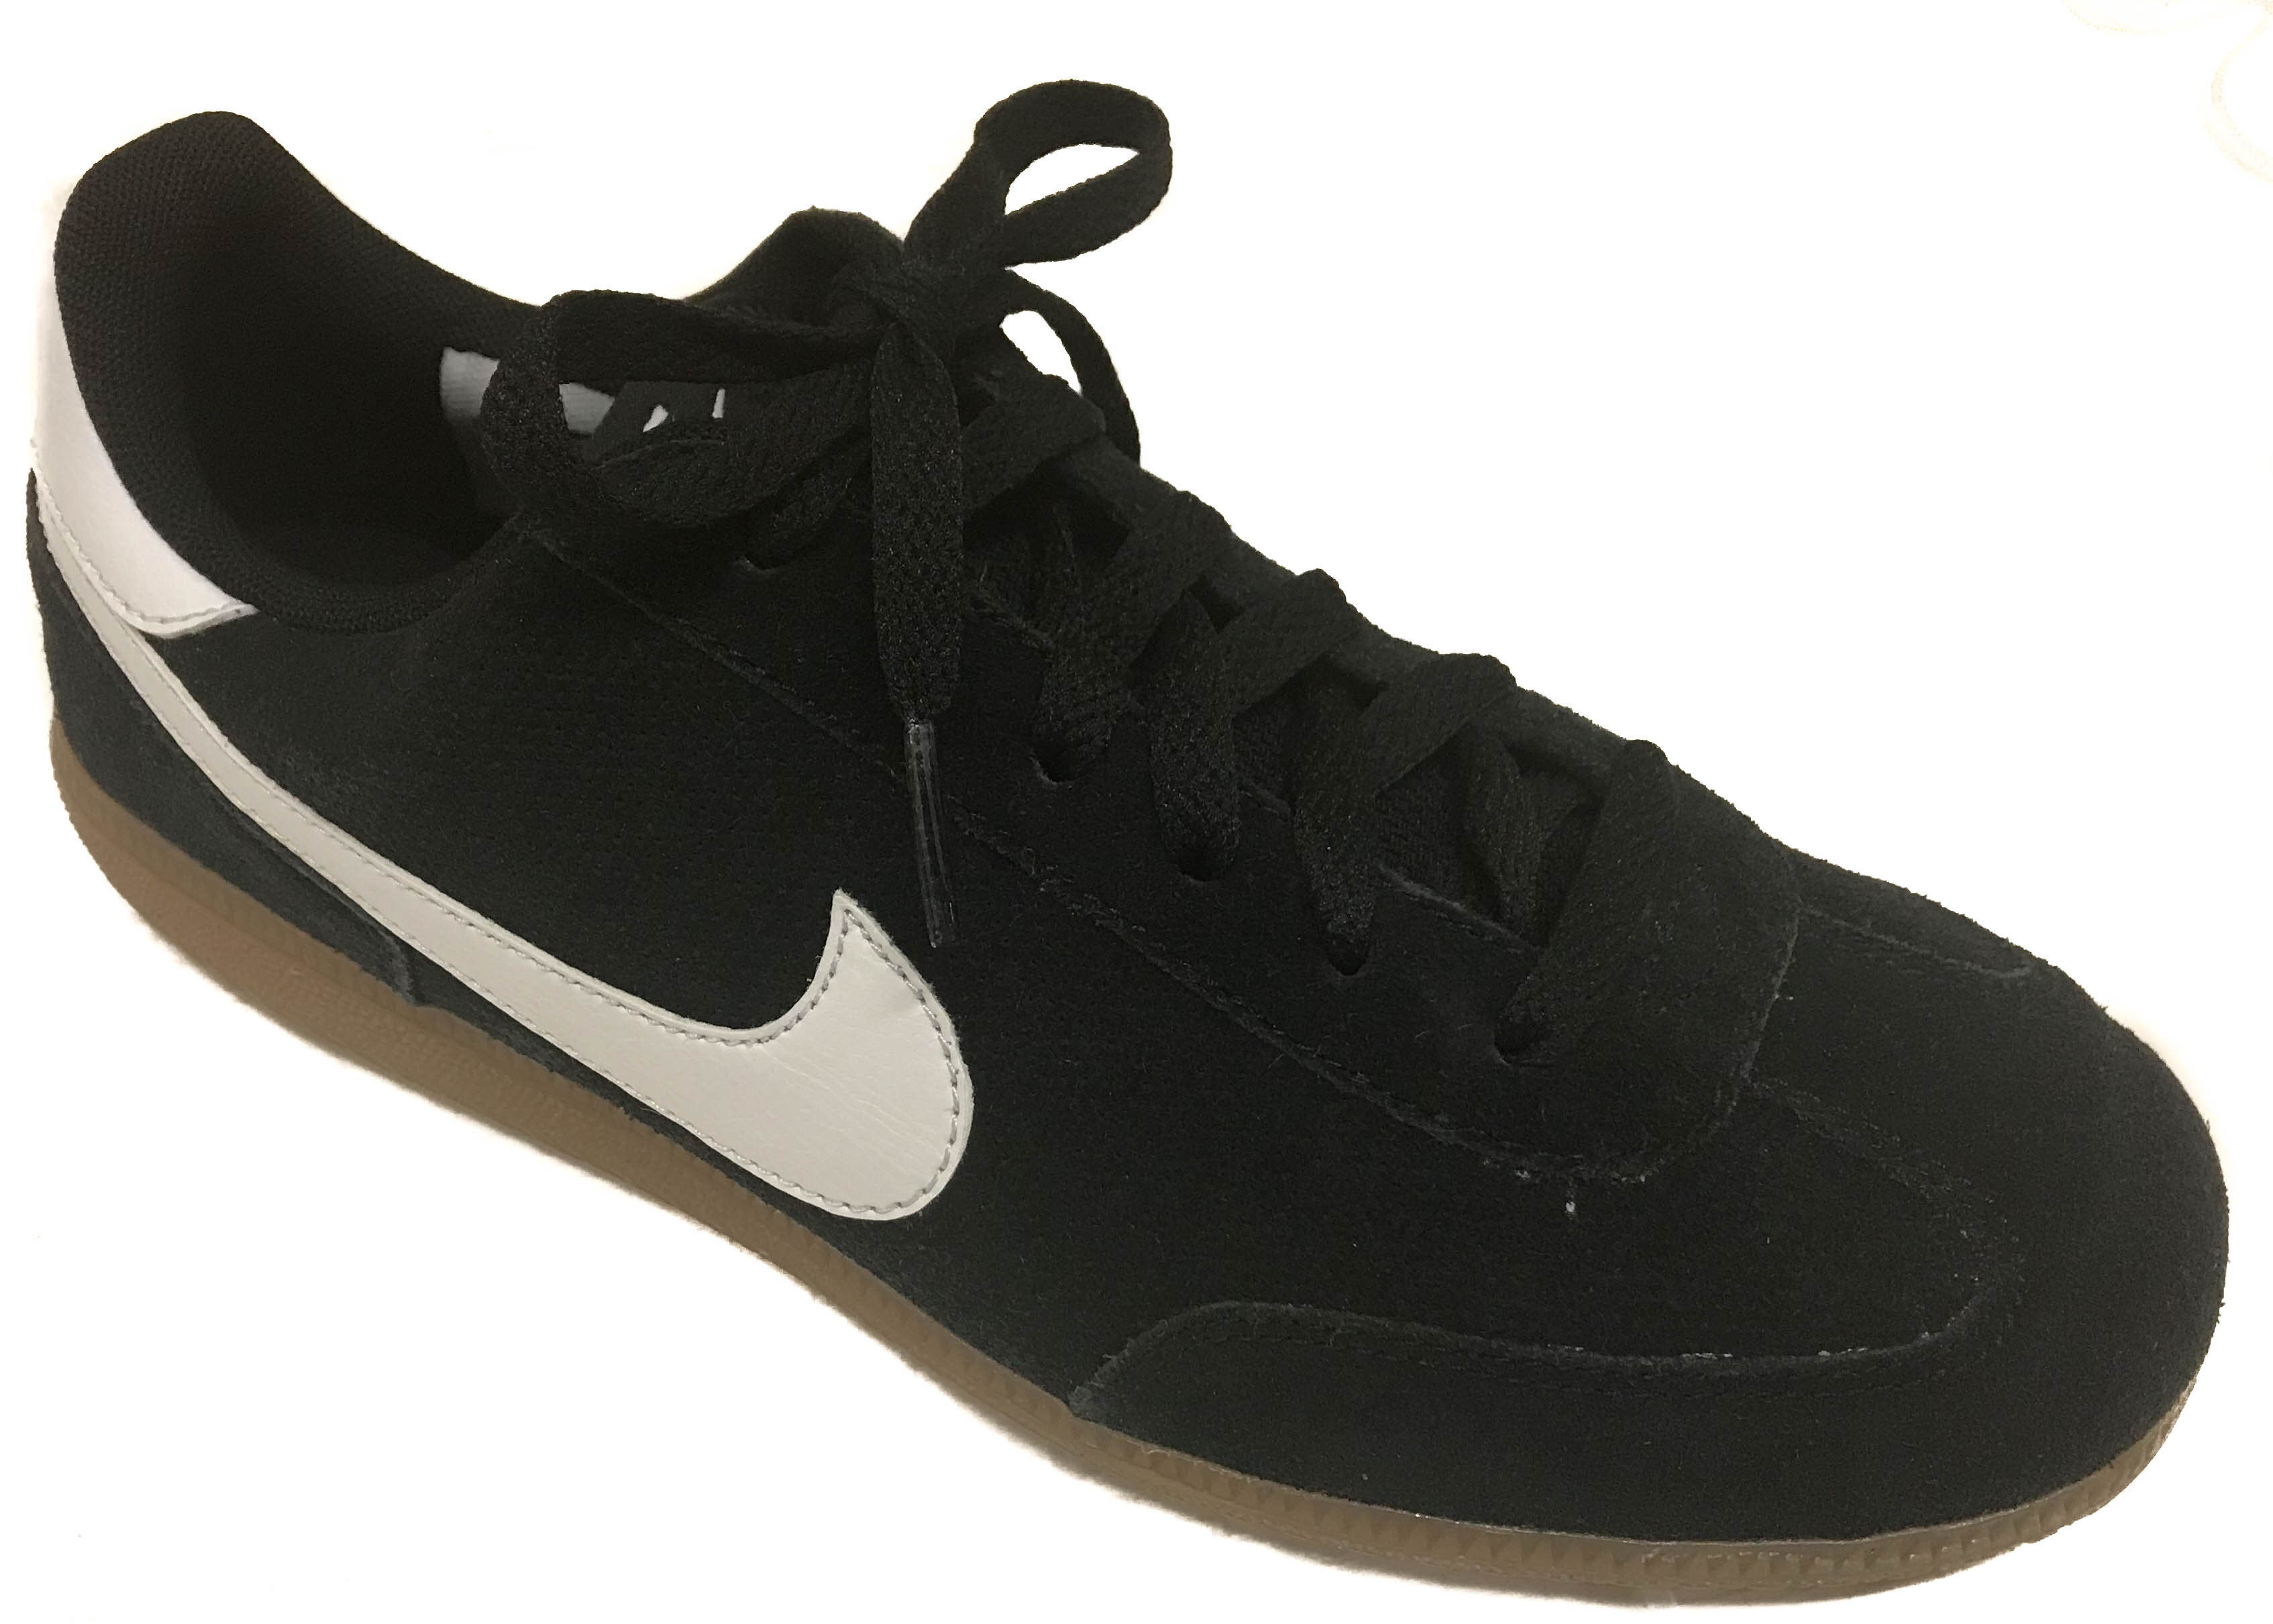 reputable site 6f793 abfaa ... uk nike cheyenne 2013 gs youth skate shoes black white gum med brown  5519b c1128